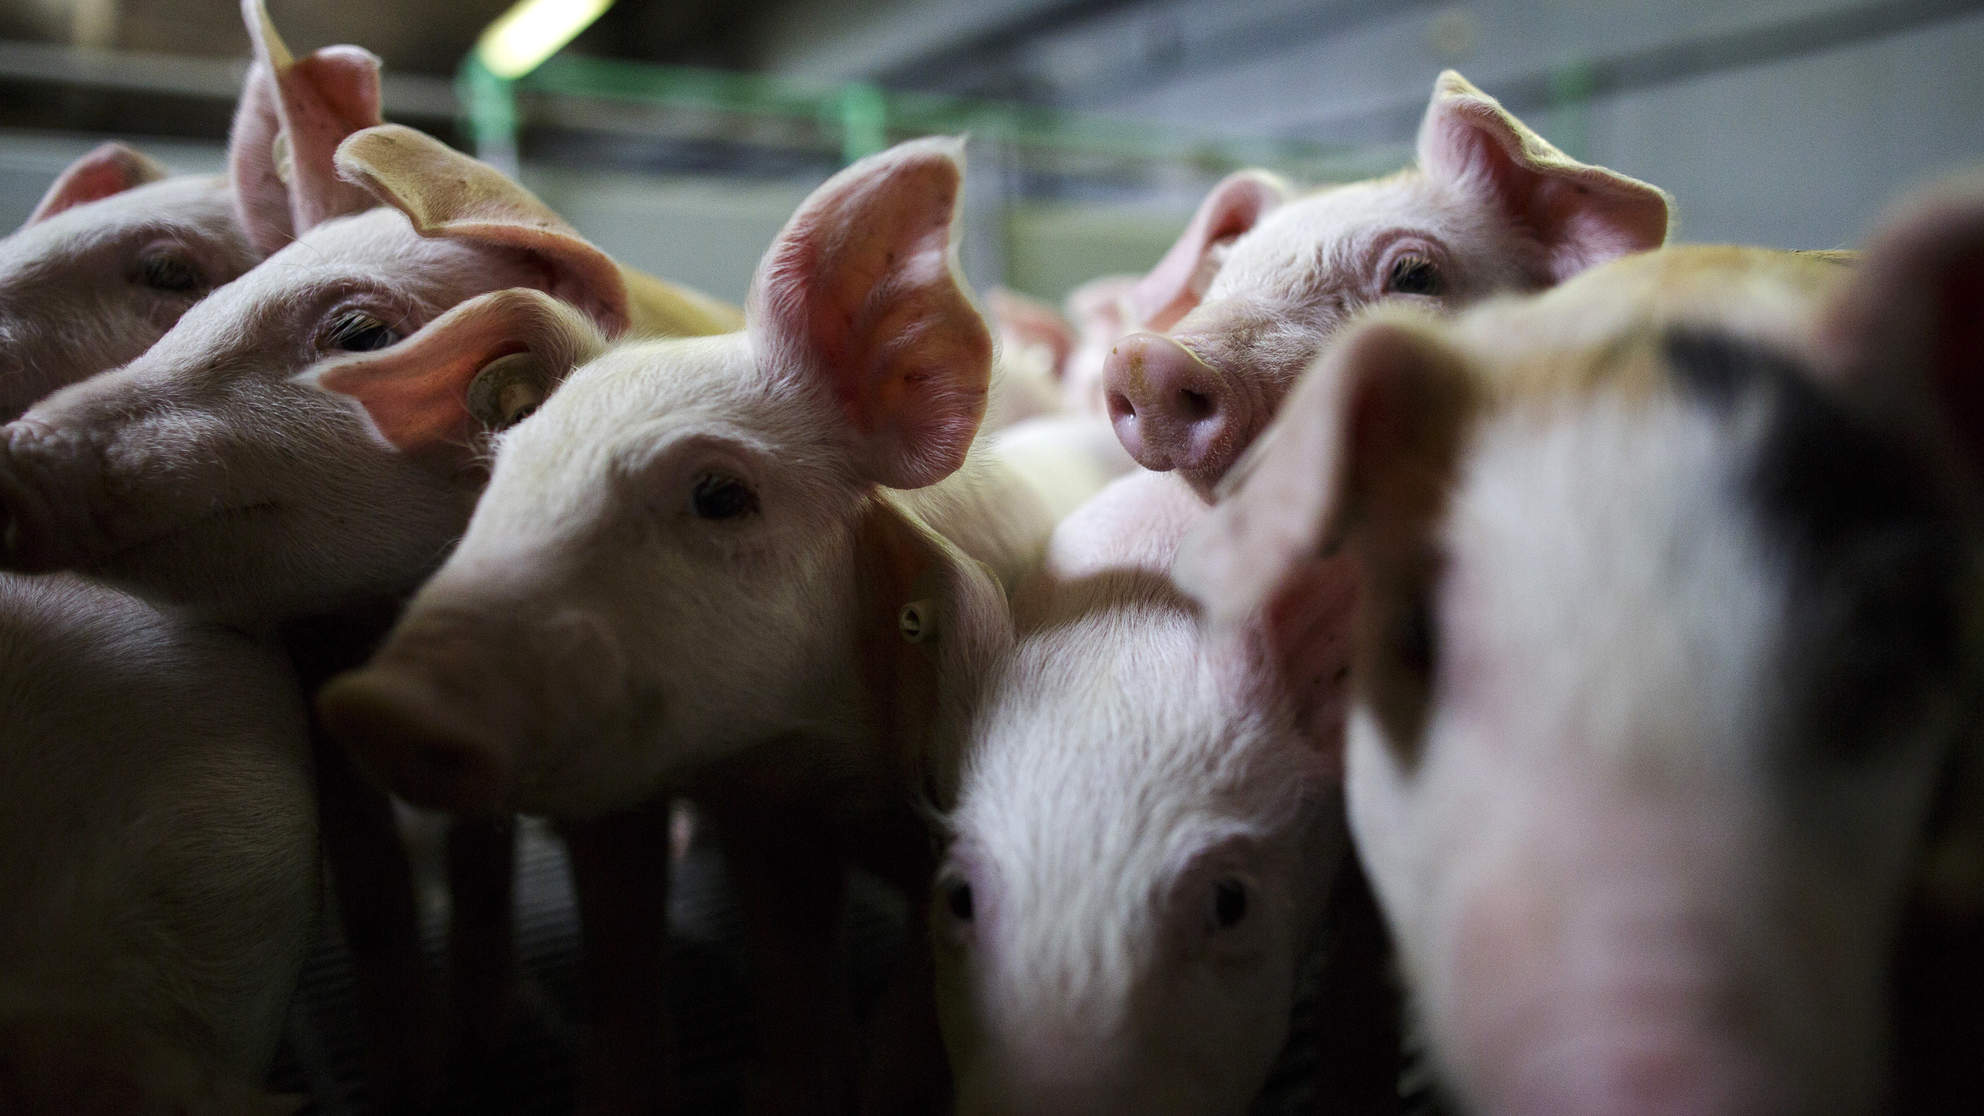 Stop Using Antibiotics in Healthy Animals, World Health Organization Says